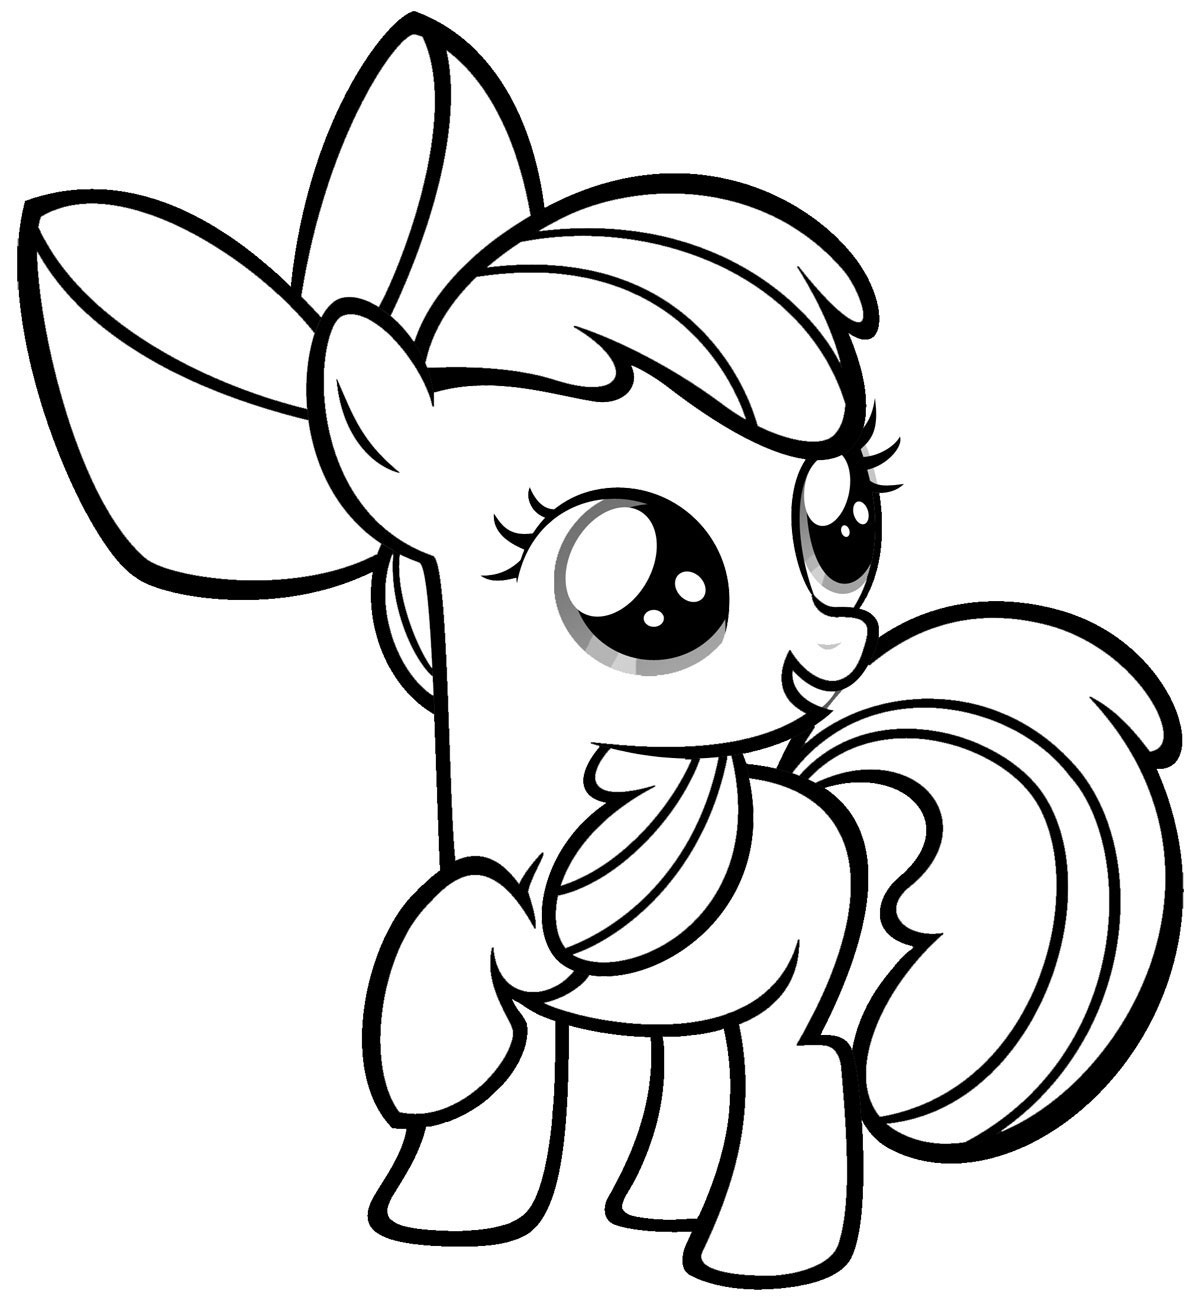 coloring pages for girls - 450